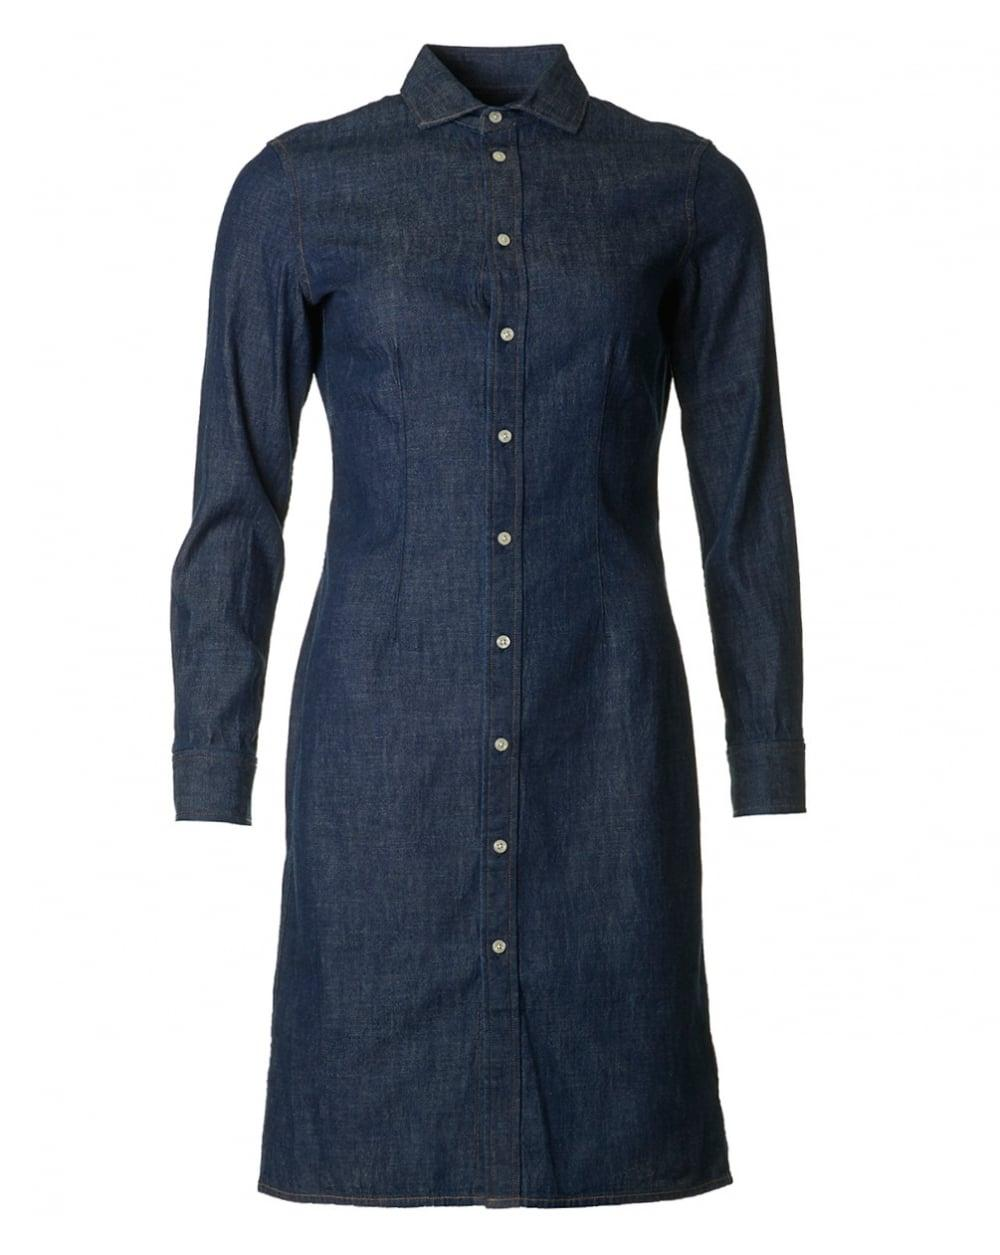 Lyst polo ralph lauren denim shirt dress in blue for Polo shirt and jeans